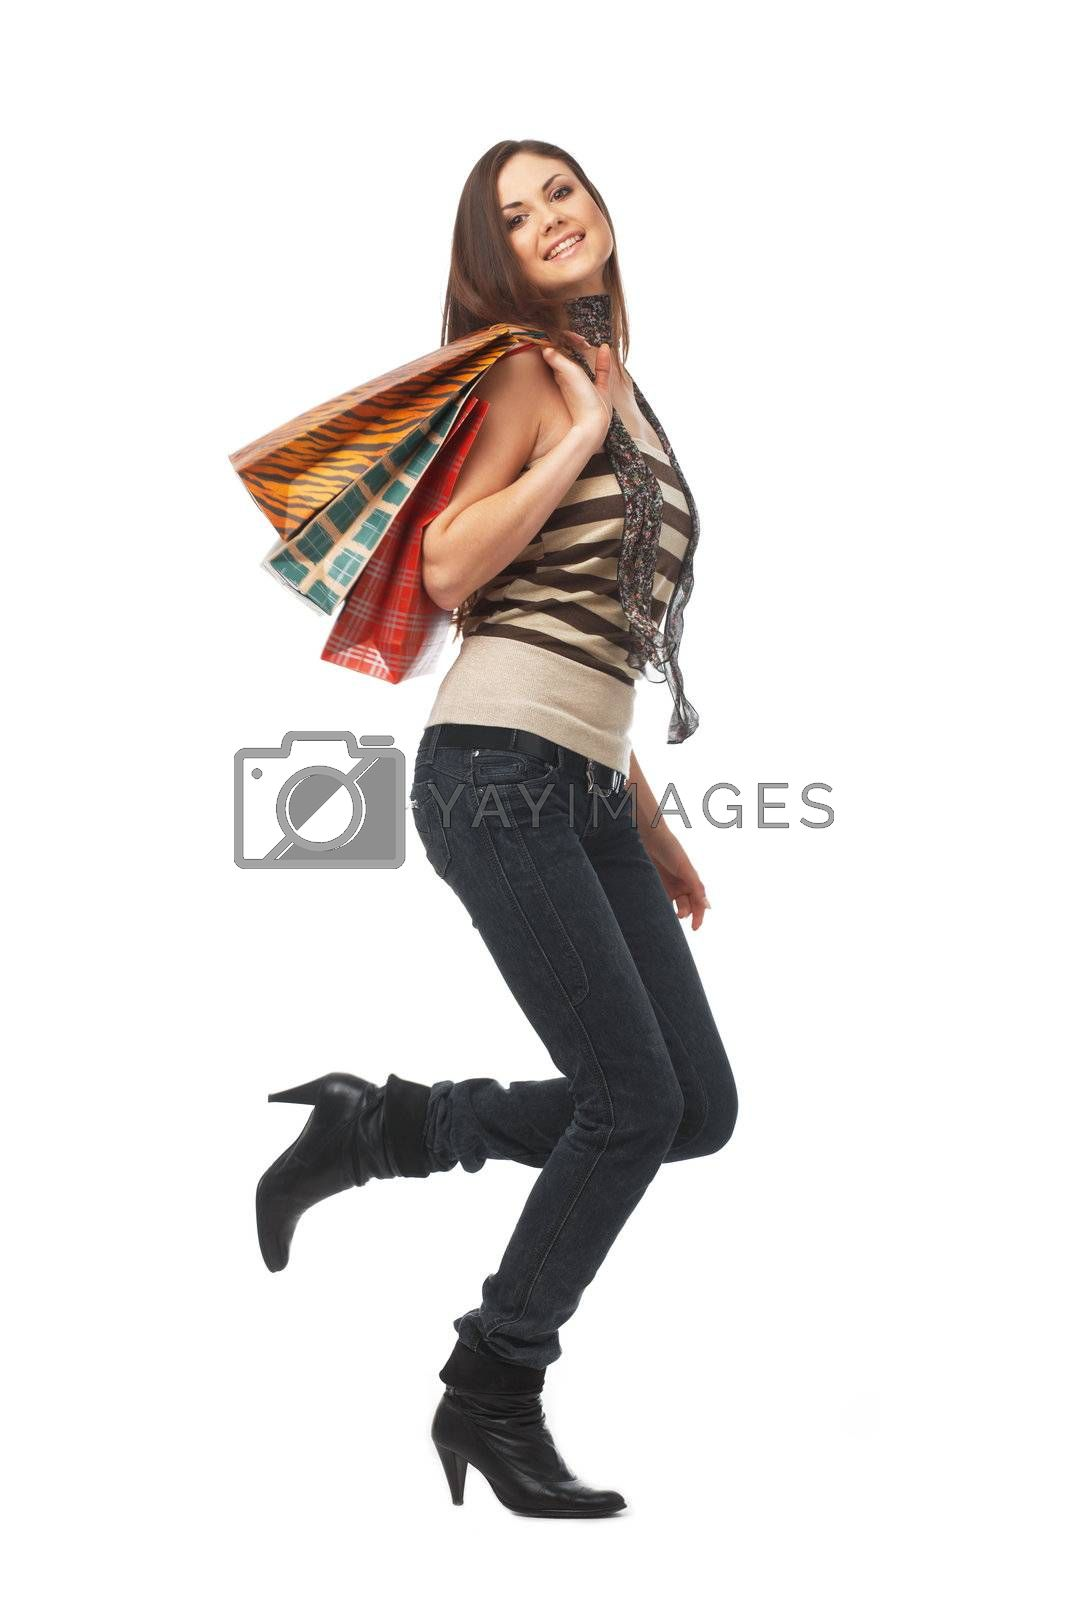 Fuii Length of a Girl With Bags by romanshyshak